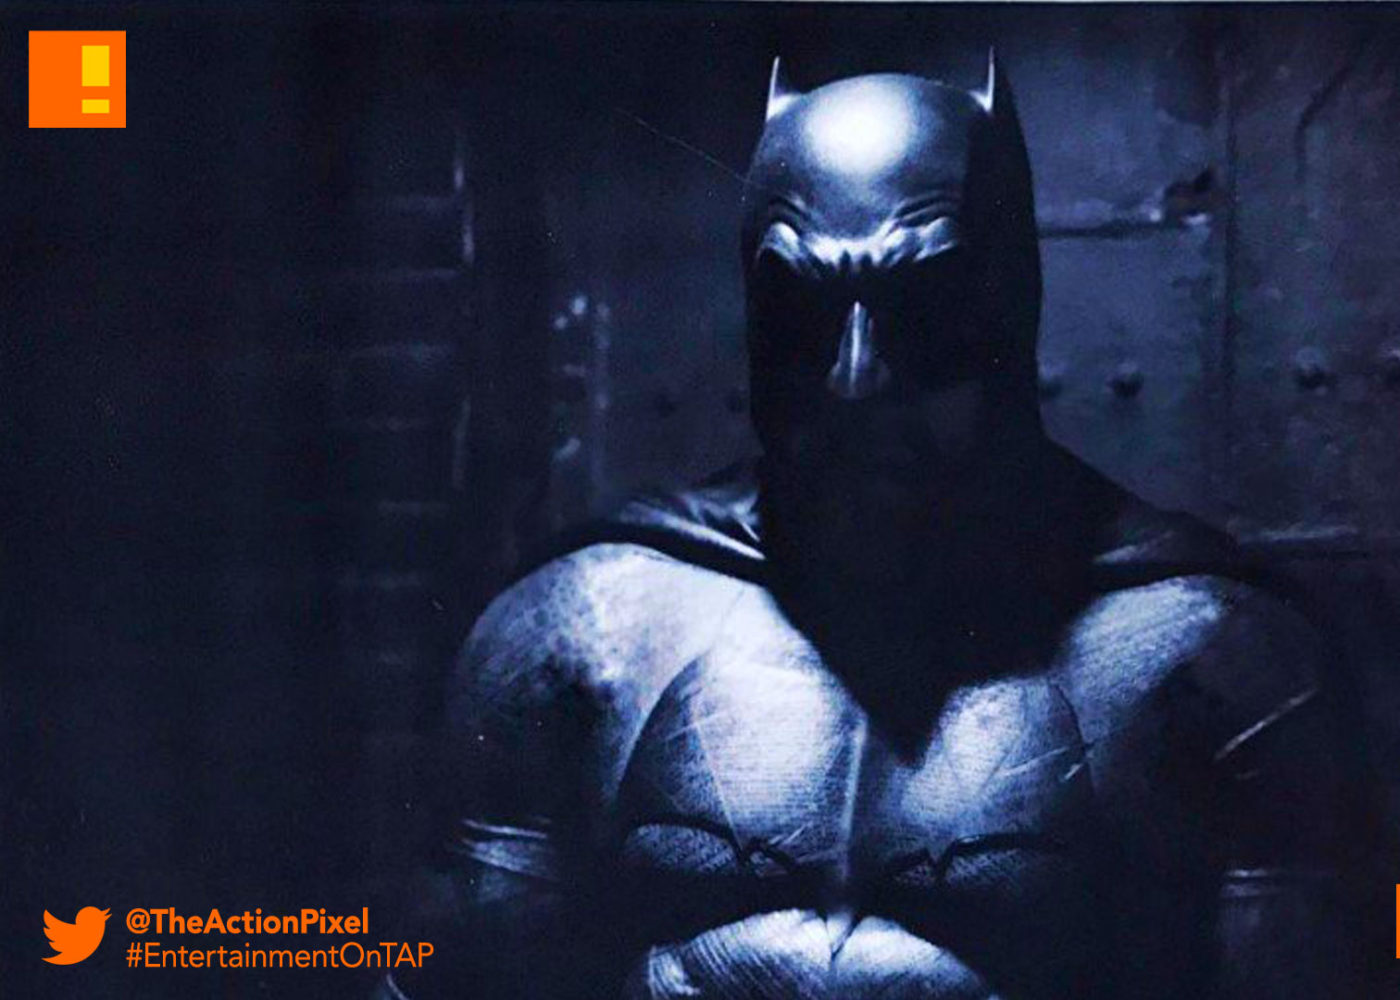 batman, ben affleck, the action pixel, entertainment on tap,zack snyder